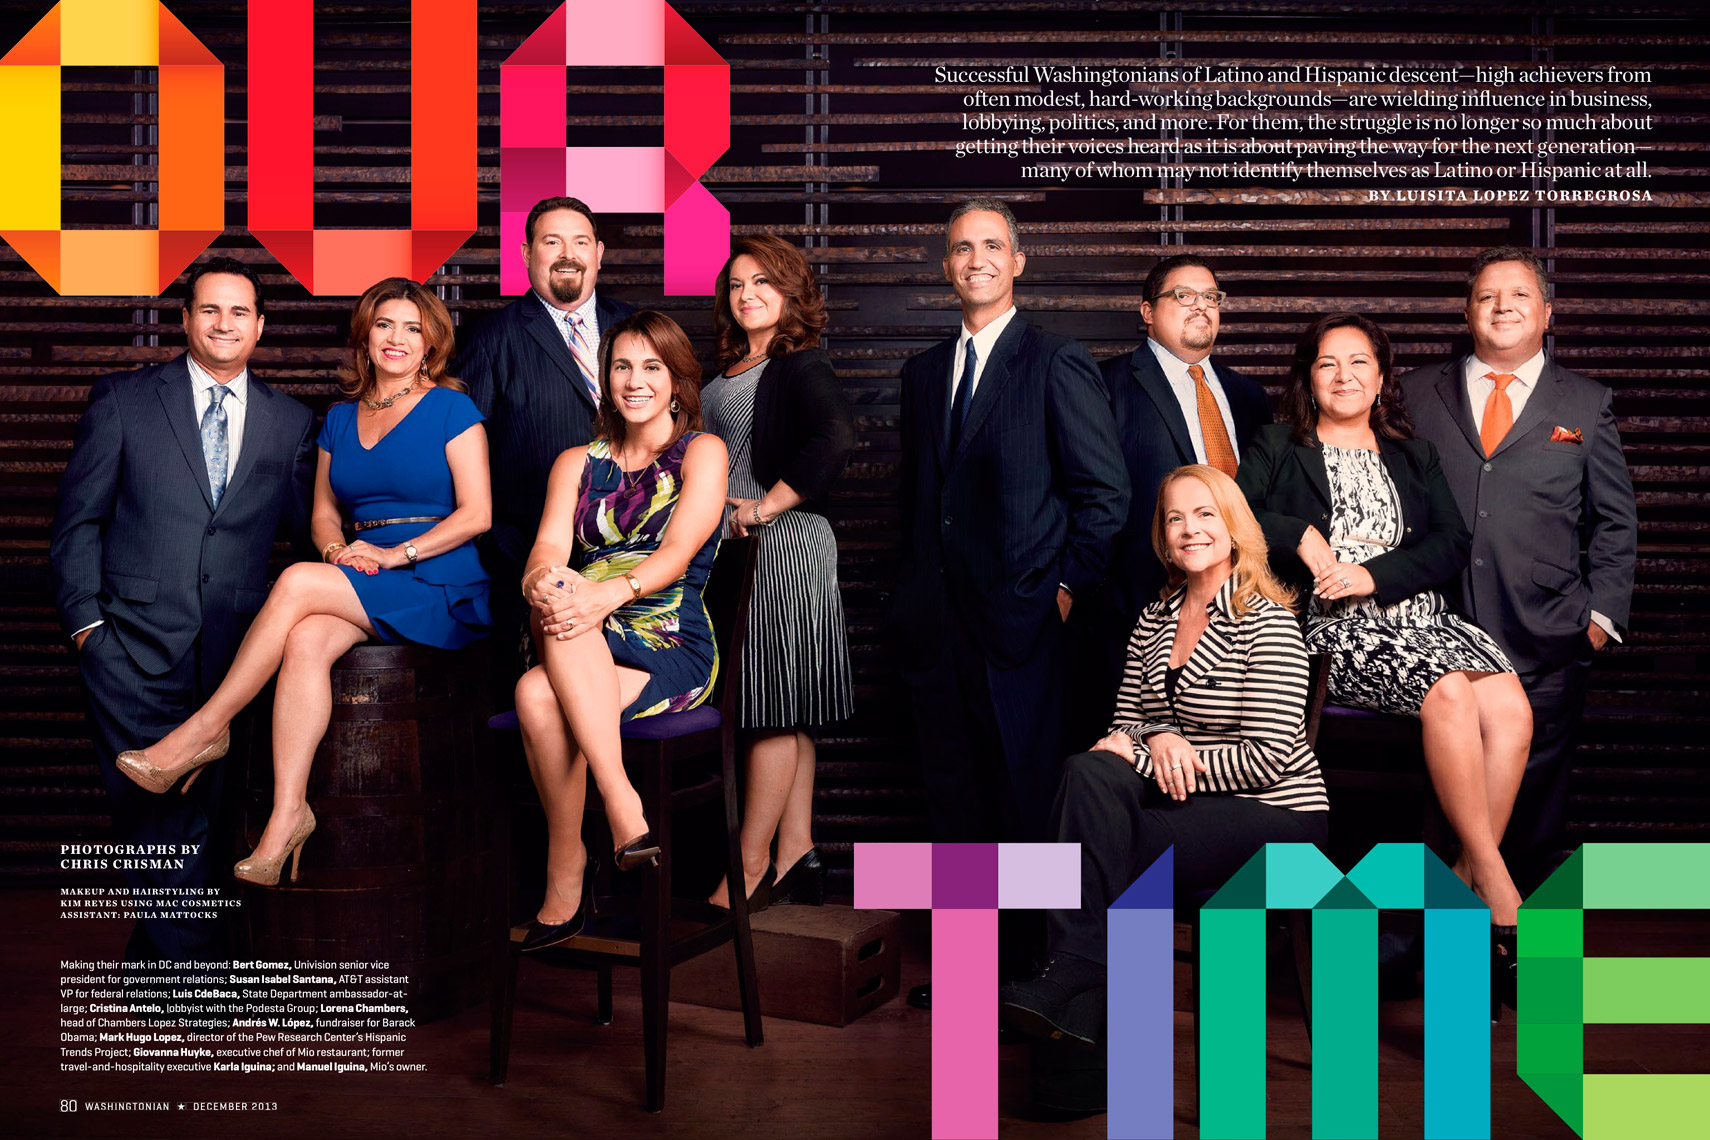 Washingtonian Magazine - December 2013 - OUR TIME Feature - Spread 1 - photographer Chris Crisman